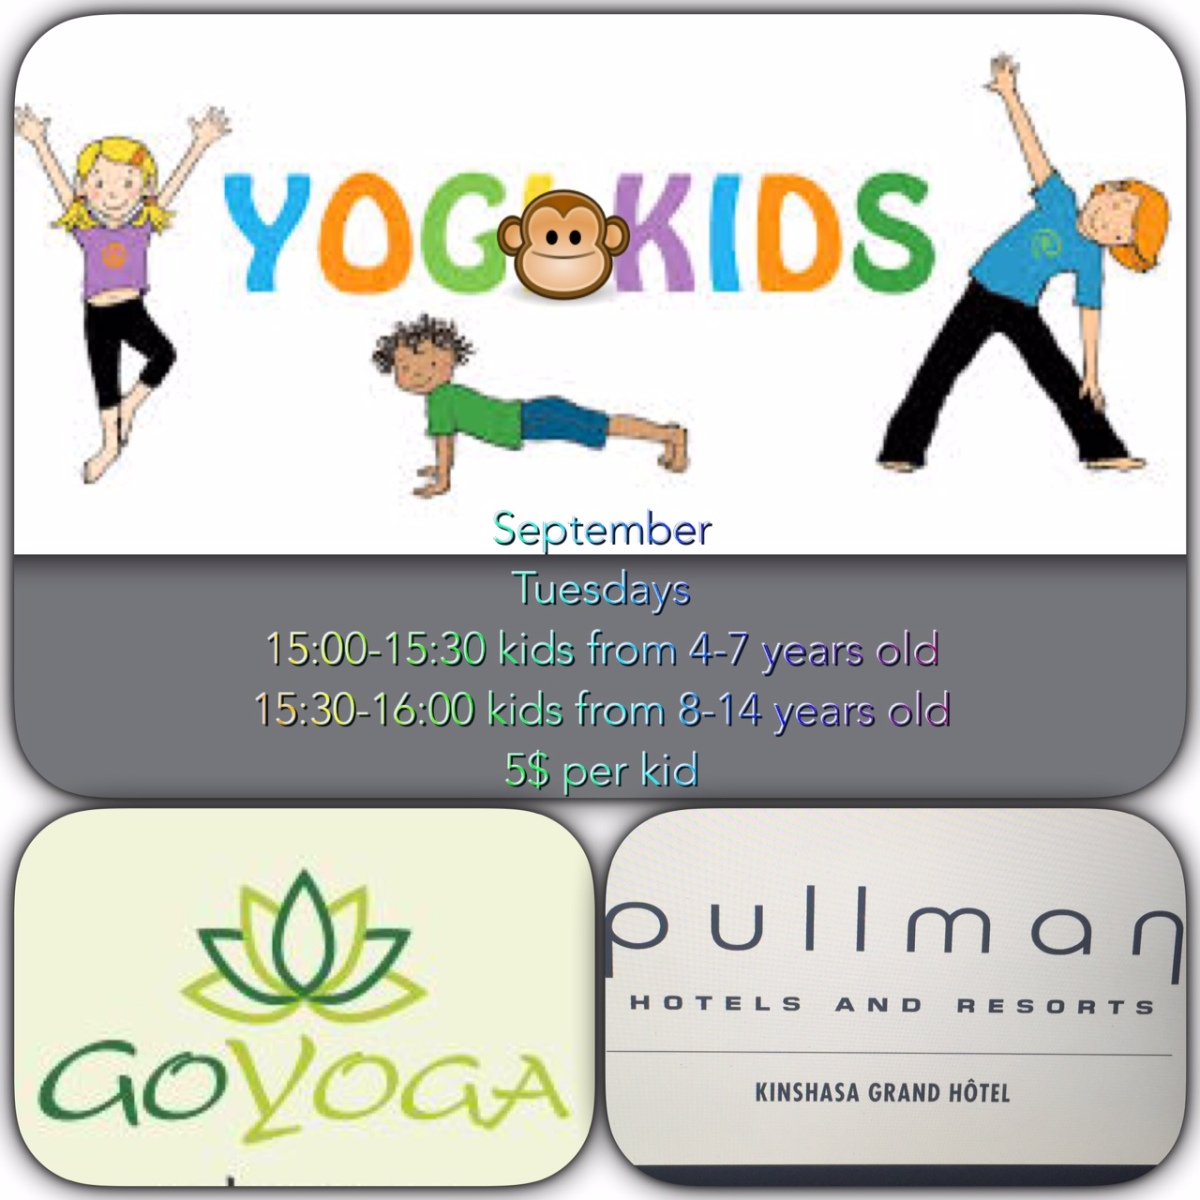 YOGAKIDS - Yoga for Kids in Kinshasa